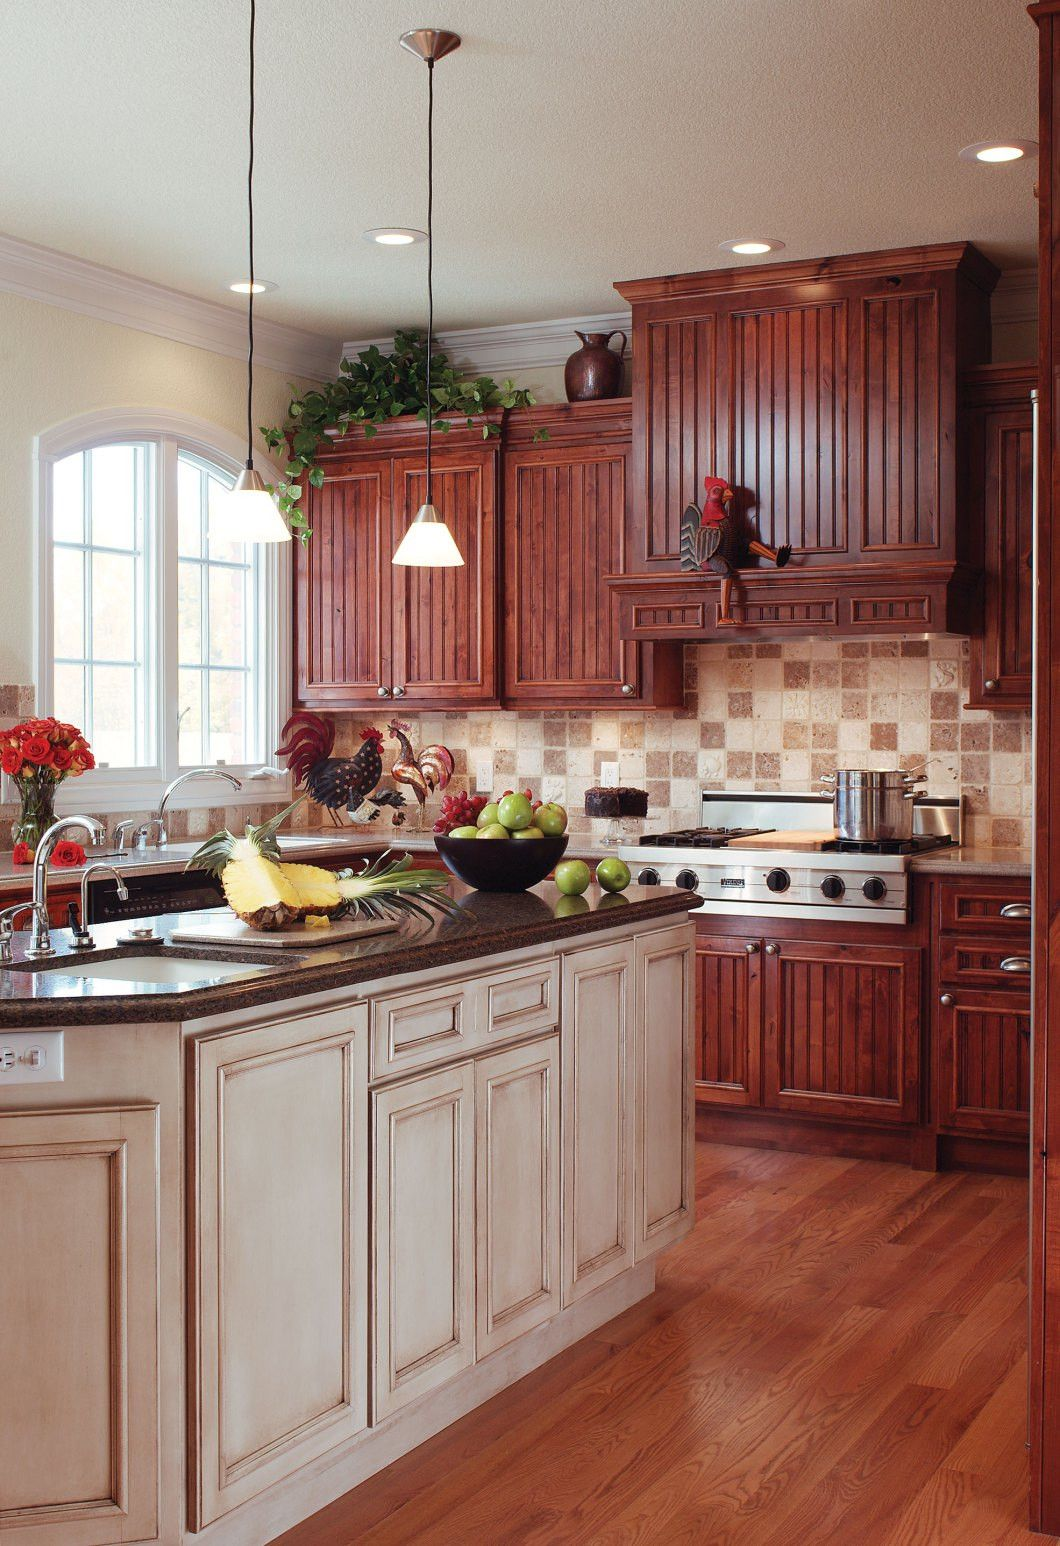 50 Parr Cabinets Portland Oregon Kitchen Island Countertop Ideas Check More At Http